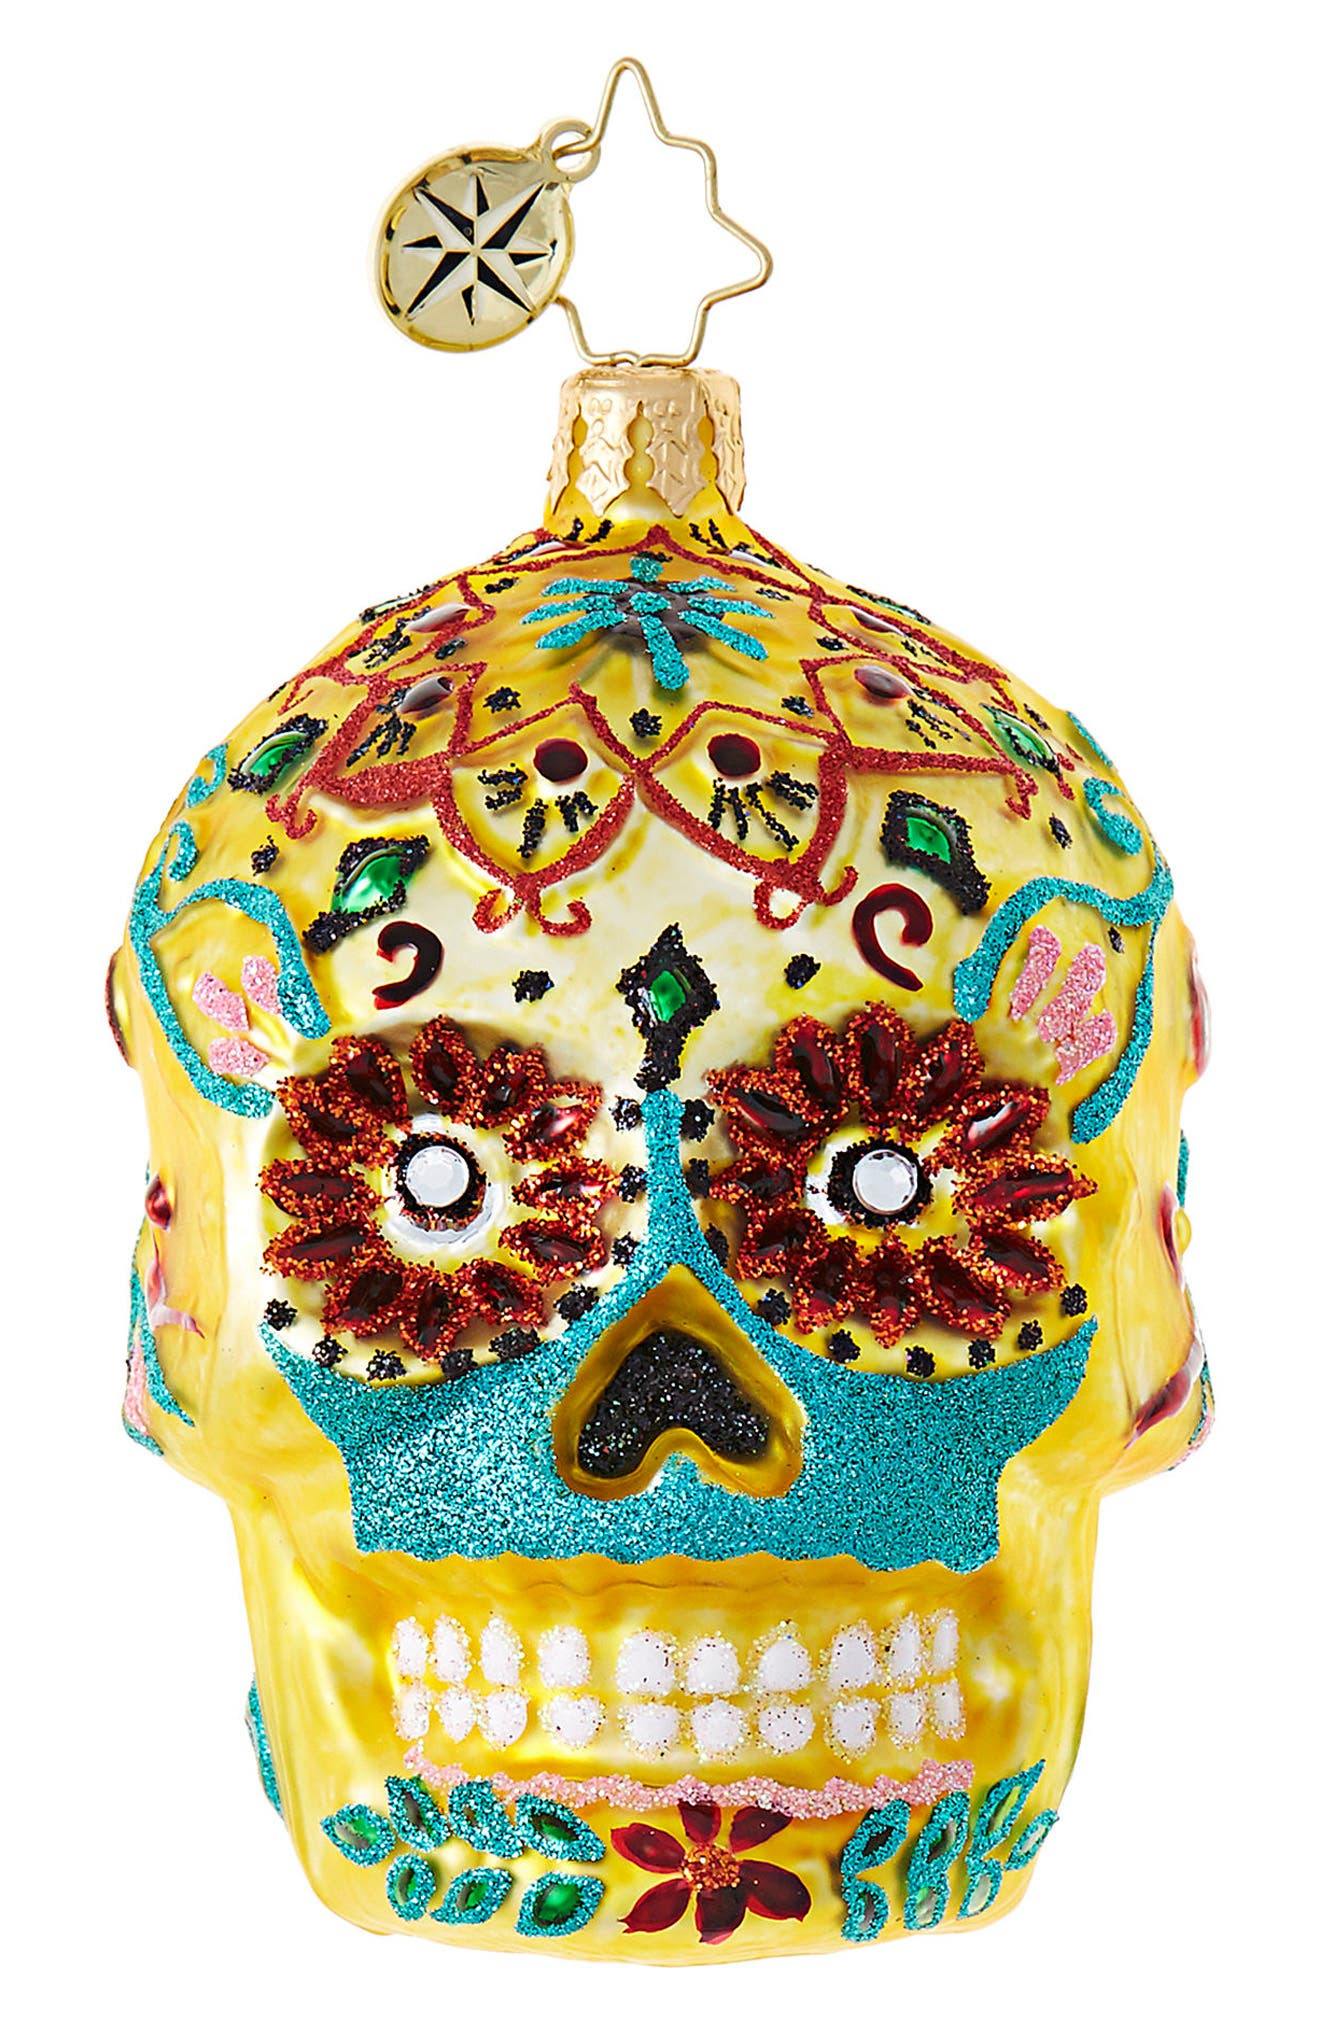 Christopher Radko Calavera de Oro Ornament